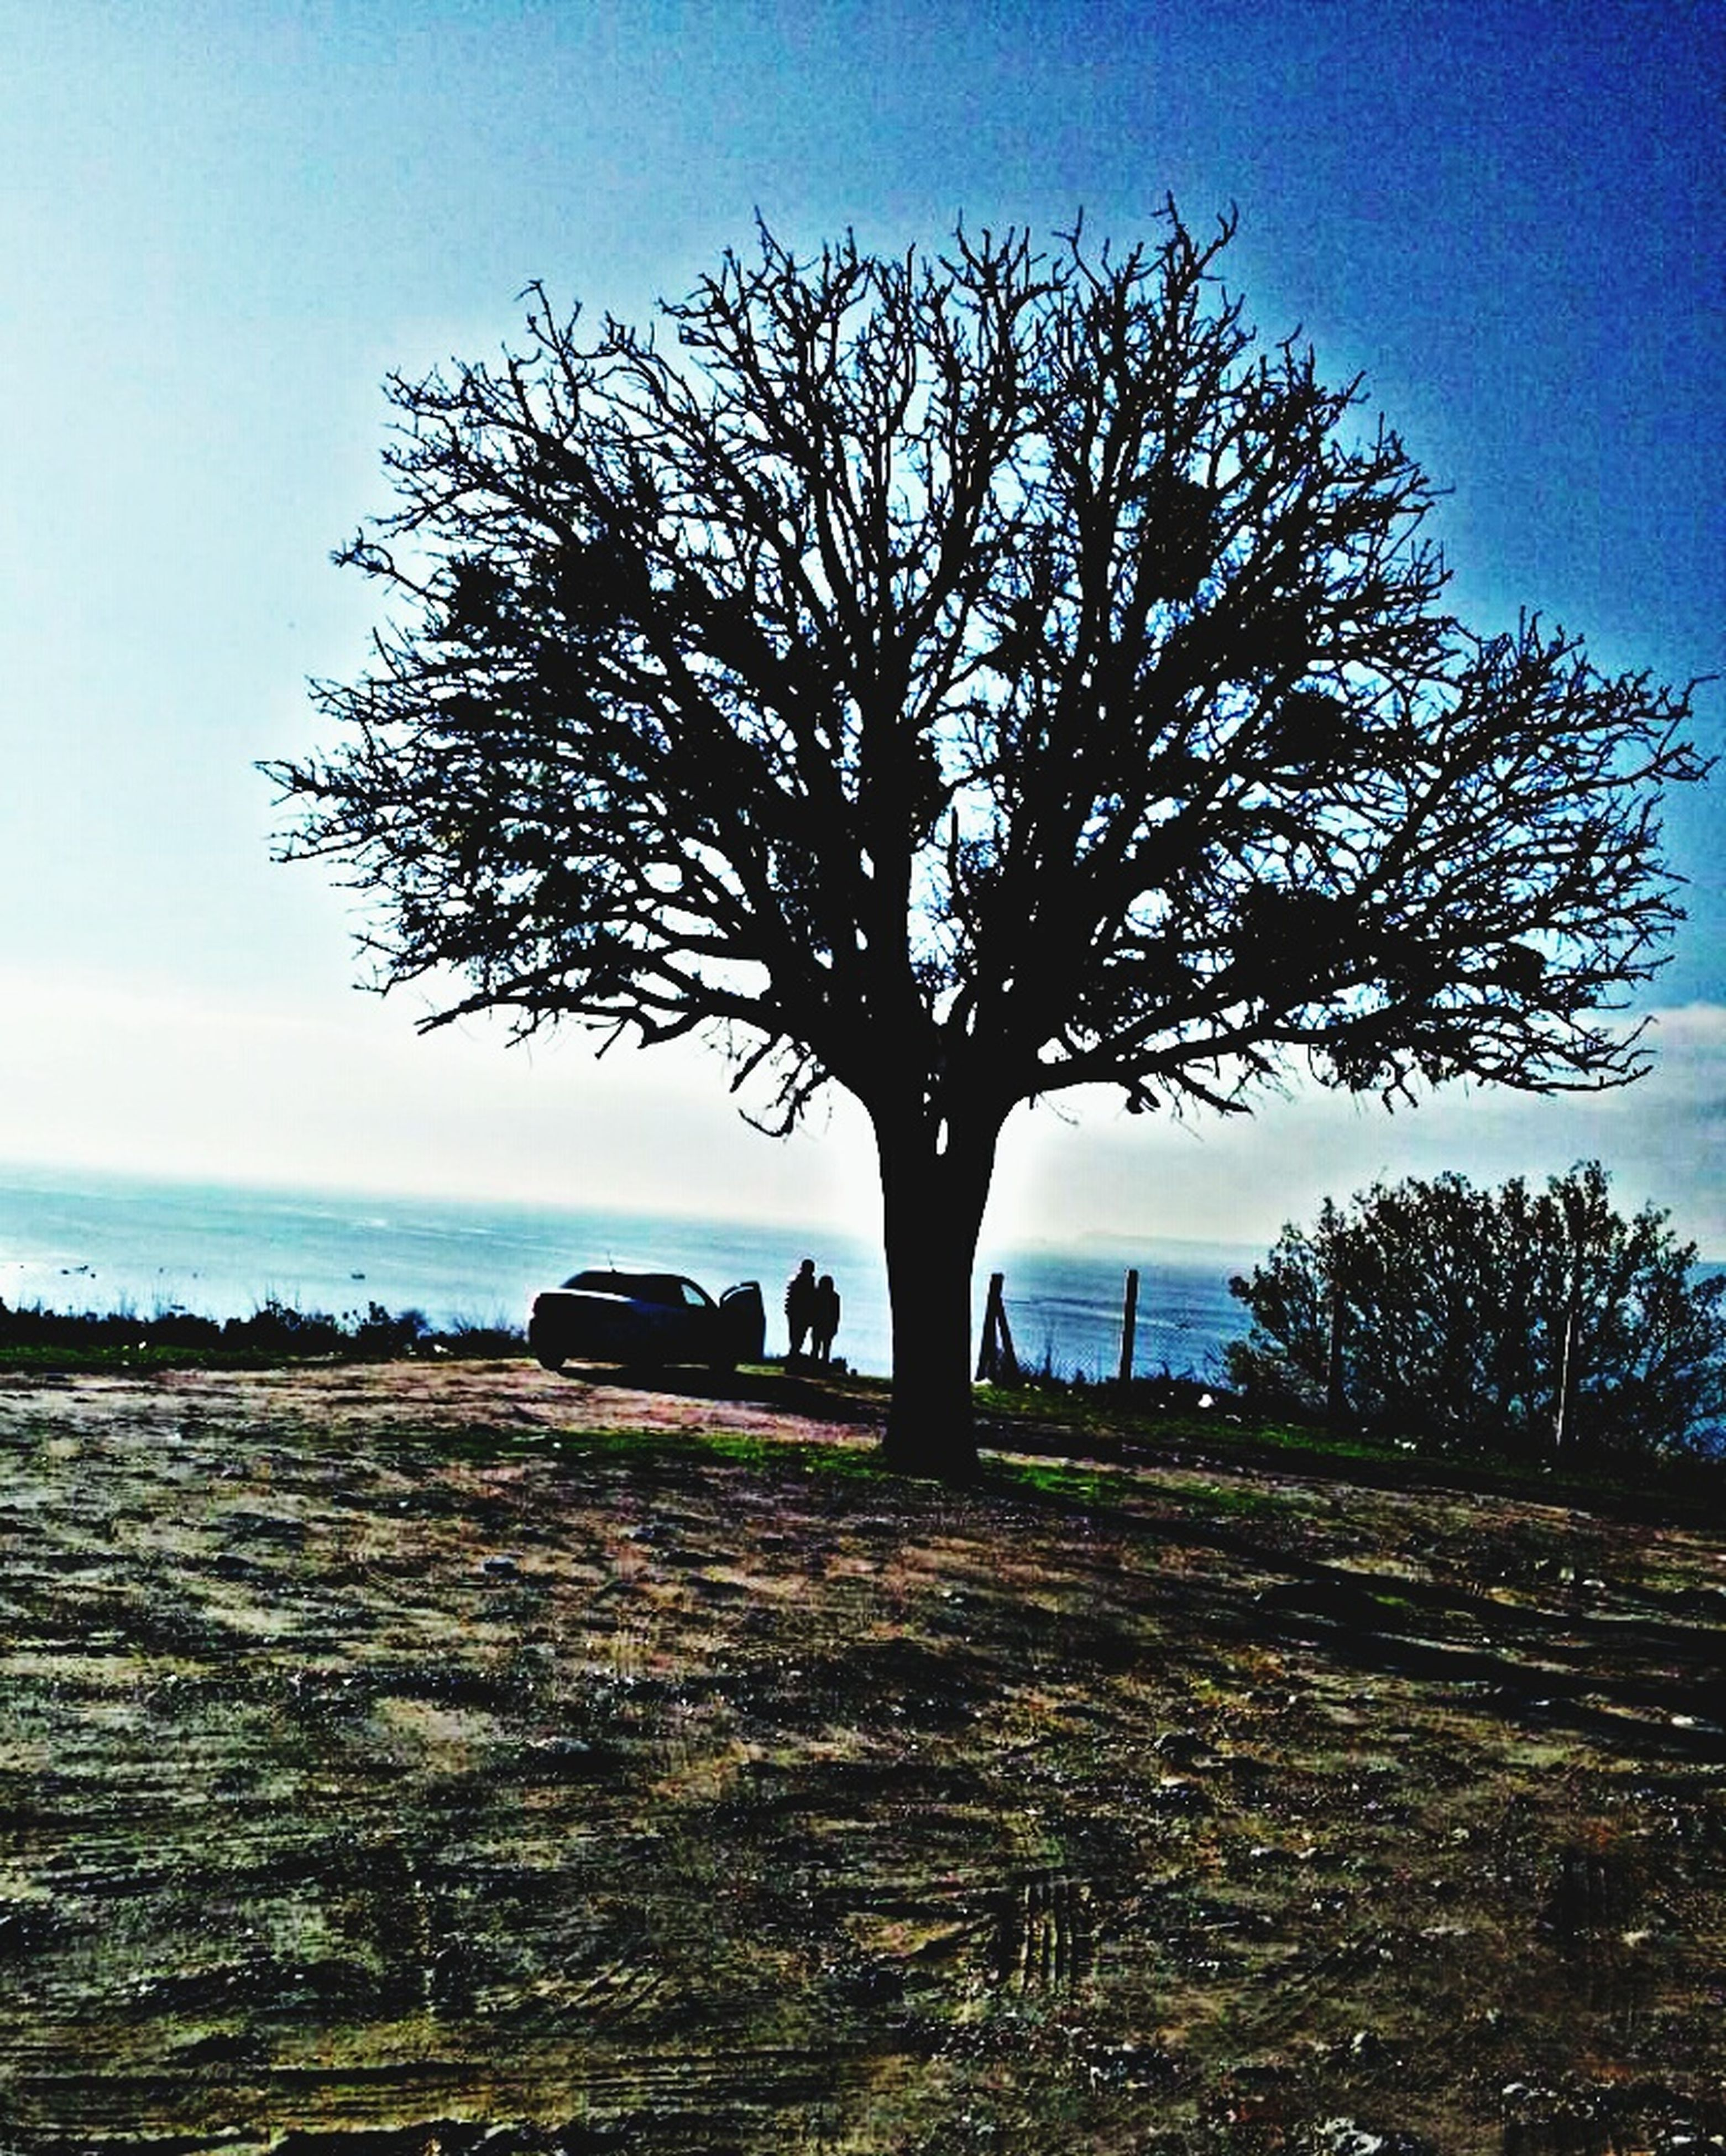 bare tree, tree, sky, tranquility, branch, landscape, tranquil scene, field, nature, scenics, silhouette, beauty in nature, clear sky, tree trunk, sunlight, non-urban scene, horizon over land, single tree, outdoors, growth